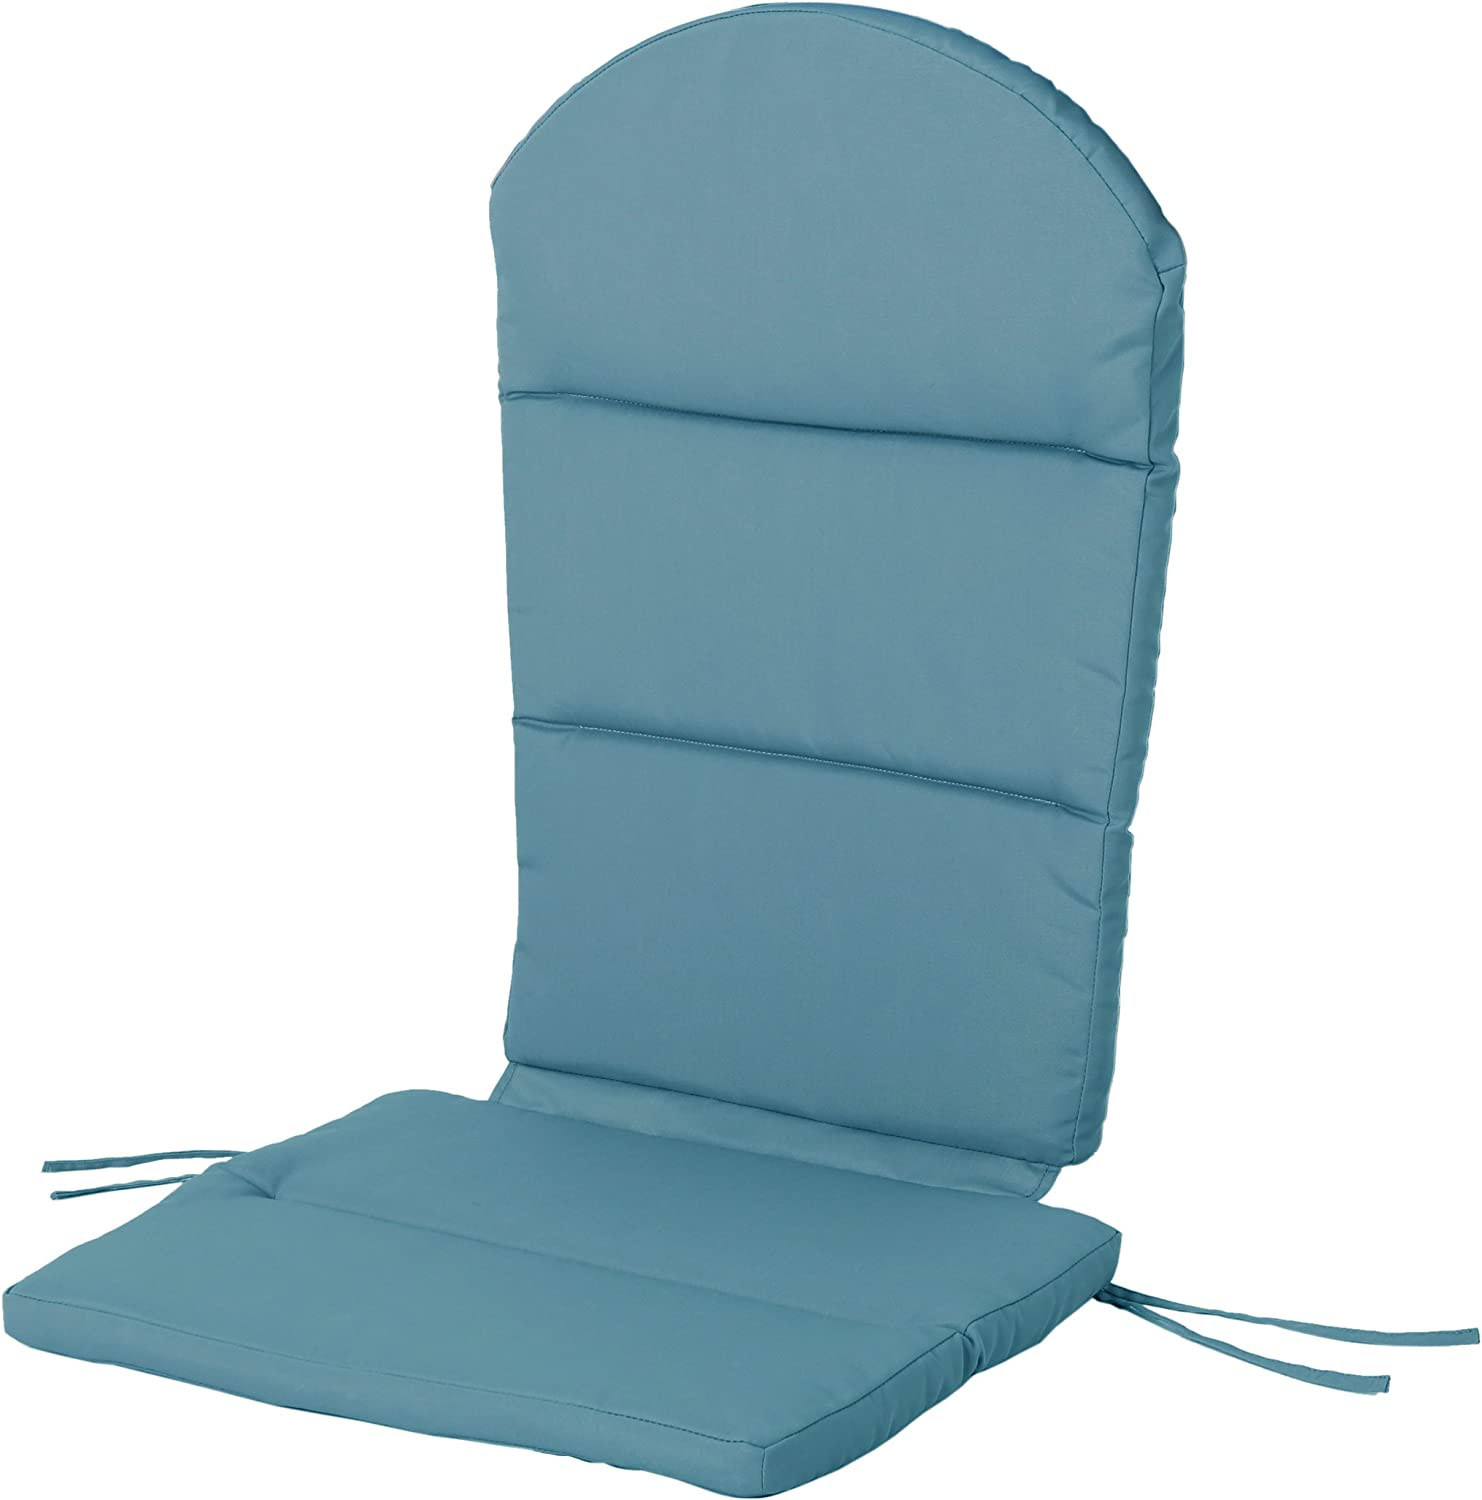 Christopher Knight Home 304528 Terry Outdoor Water-Resistant Adirondack Chair Cushion, Dark Teal